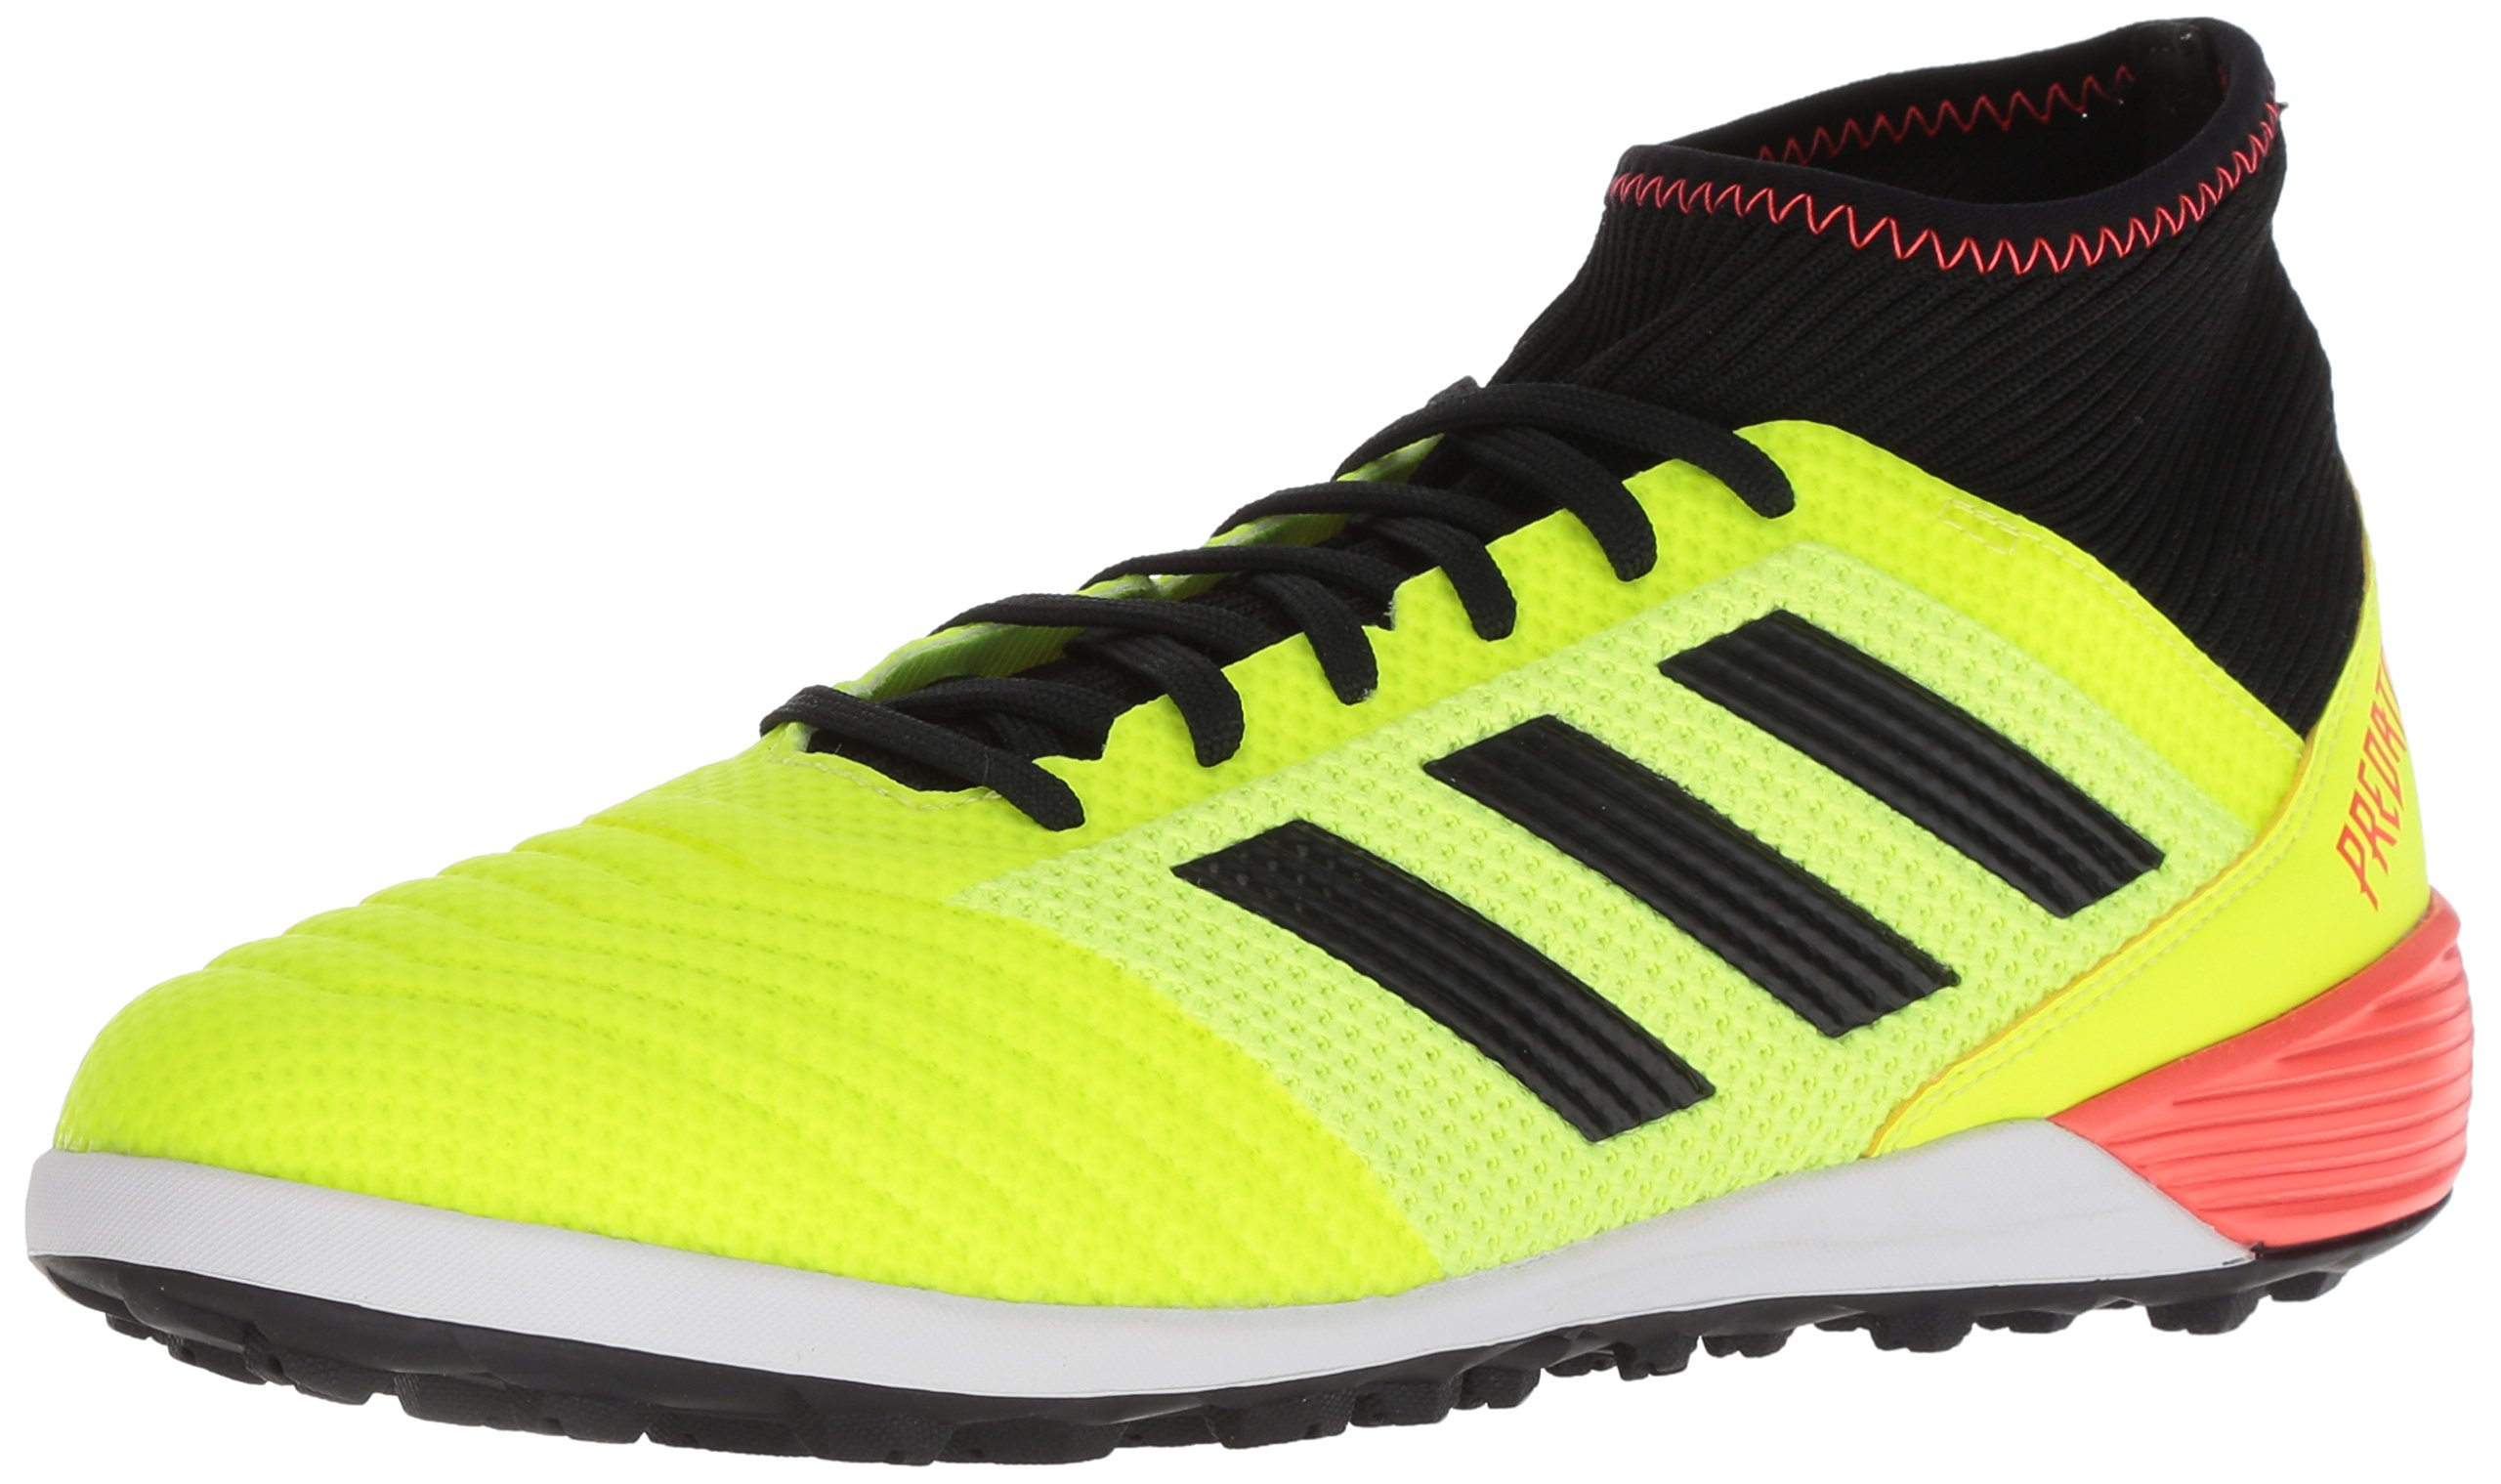 adidas Men's Predator Tango 18.3 TF Soccer Shoe, Solar Yellow/Core Black/Solar Red, 9.5 M US